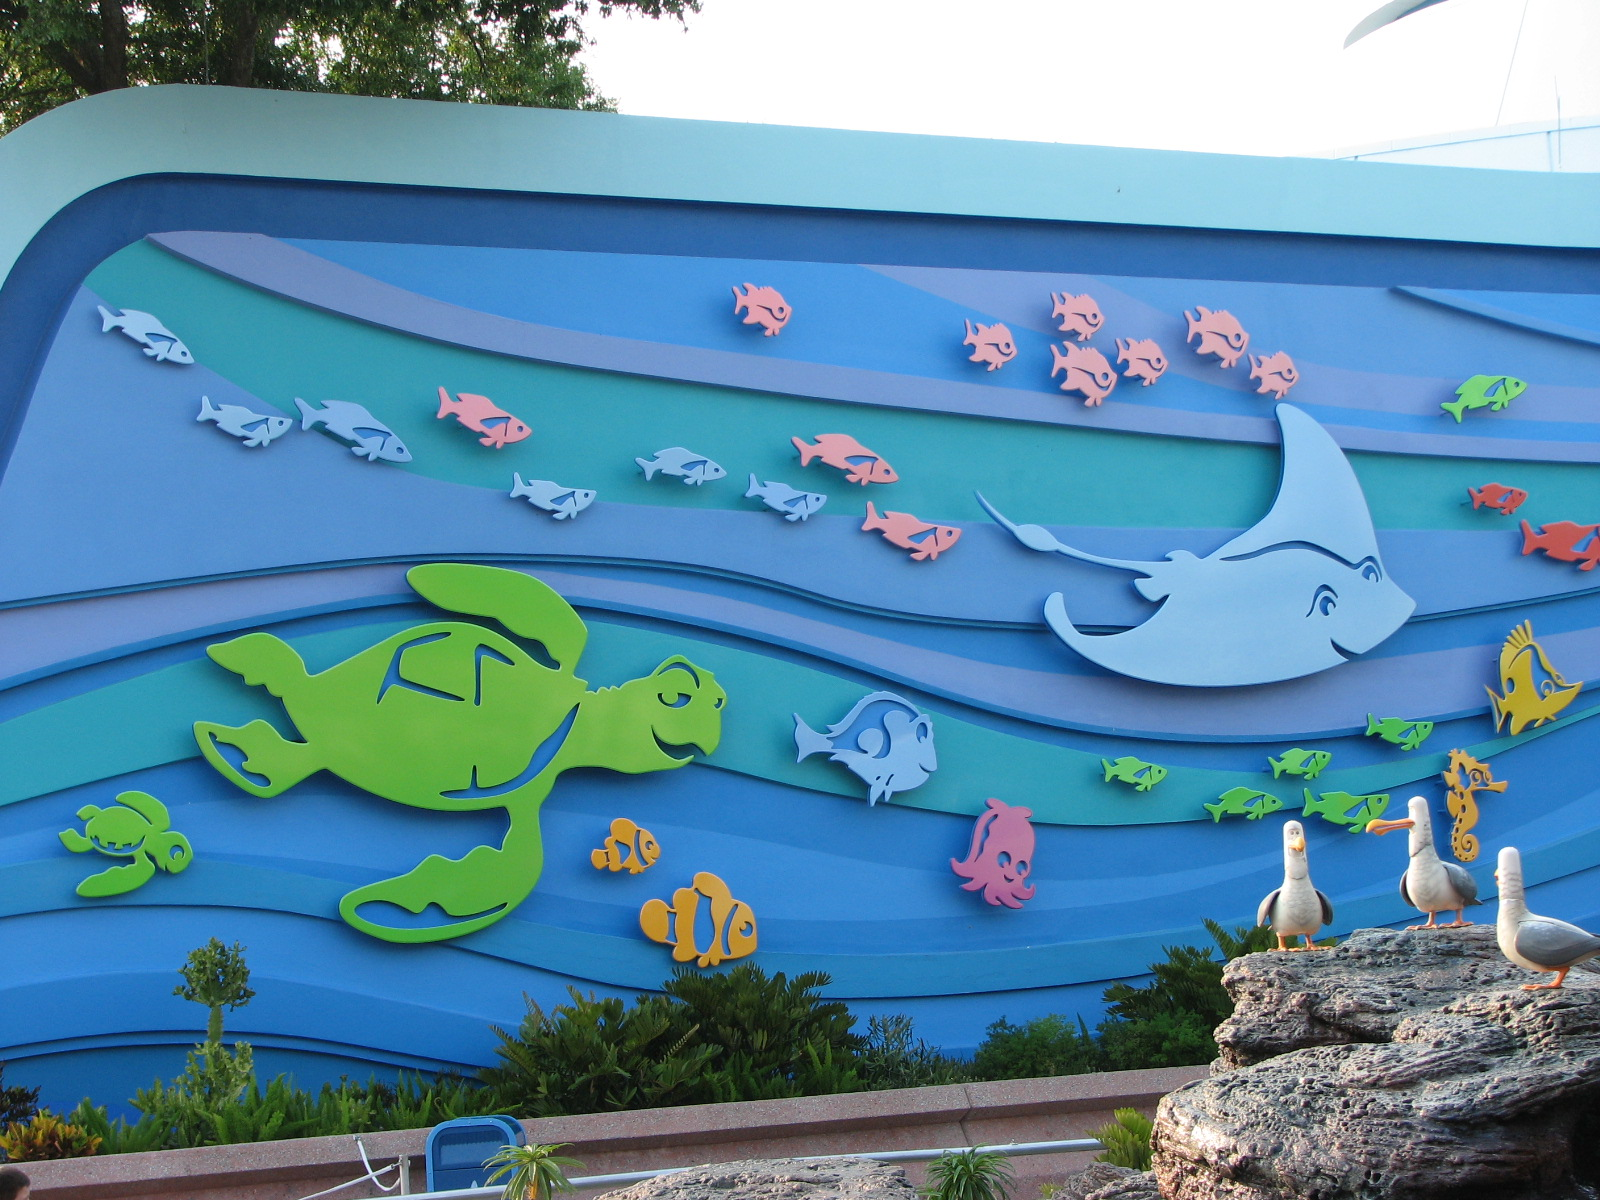 EPCOT - The Seas with Nemo & Friends - Entrance